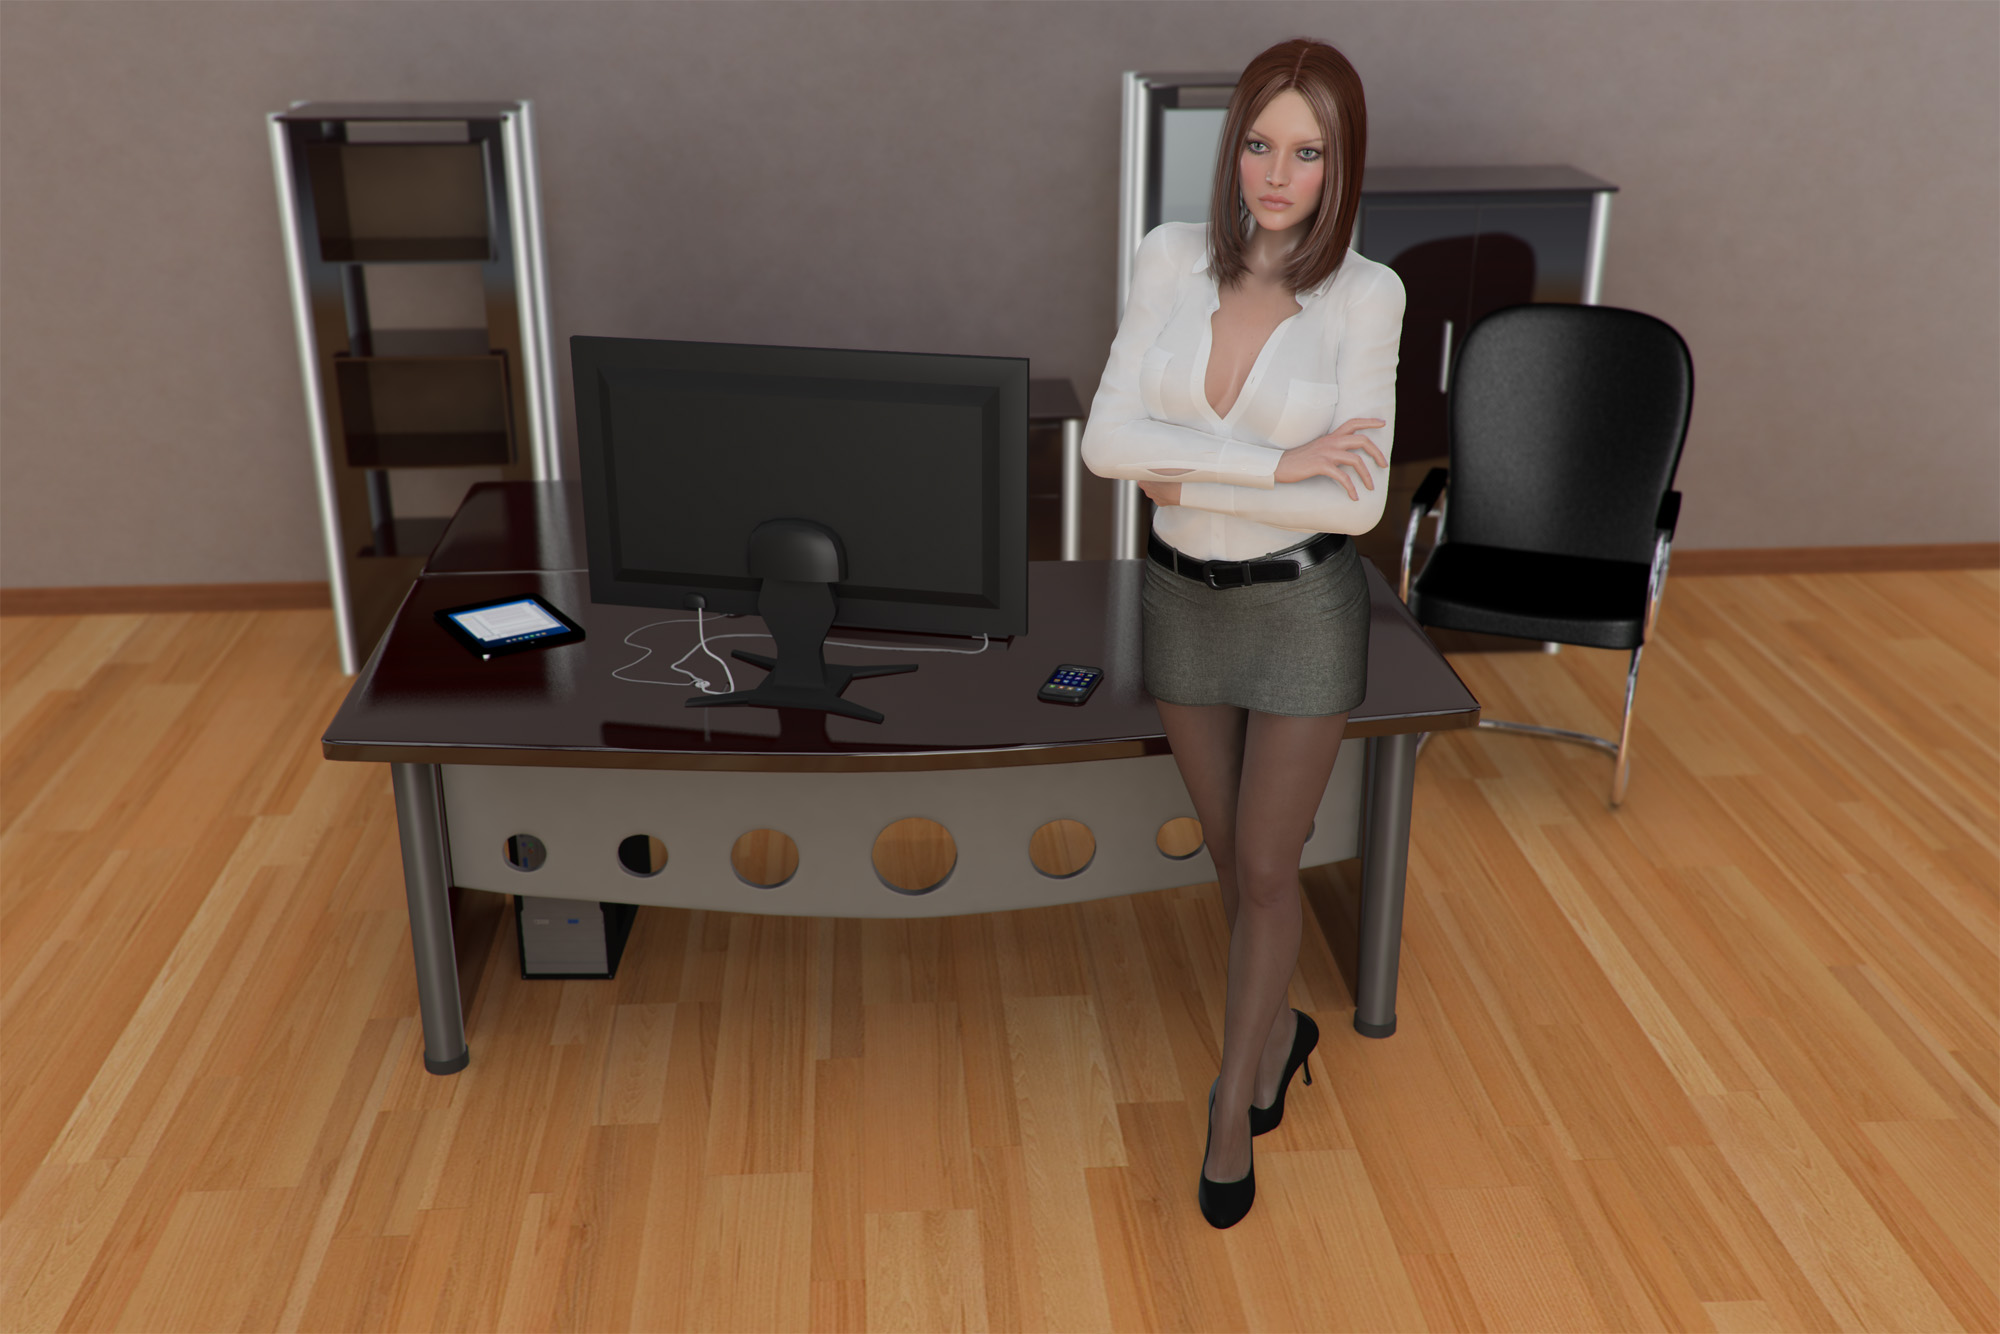 Office girl gallery